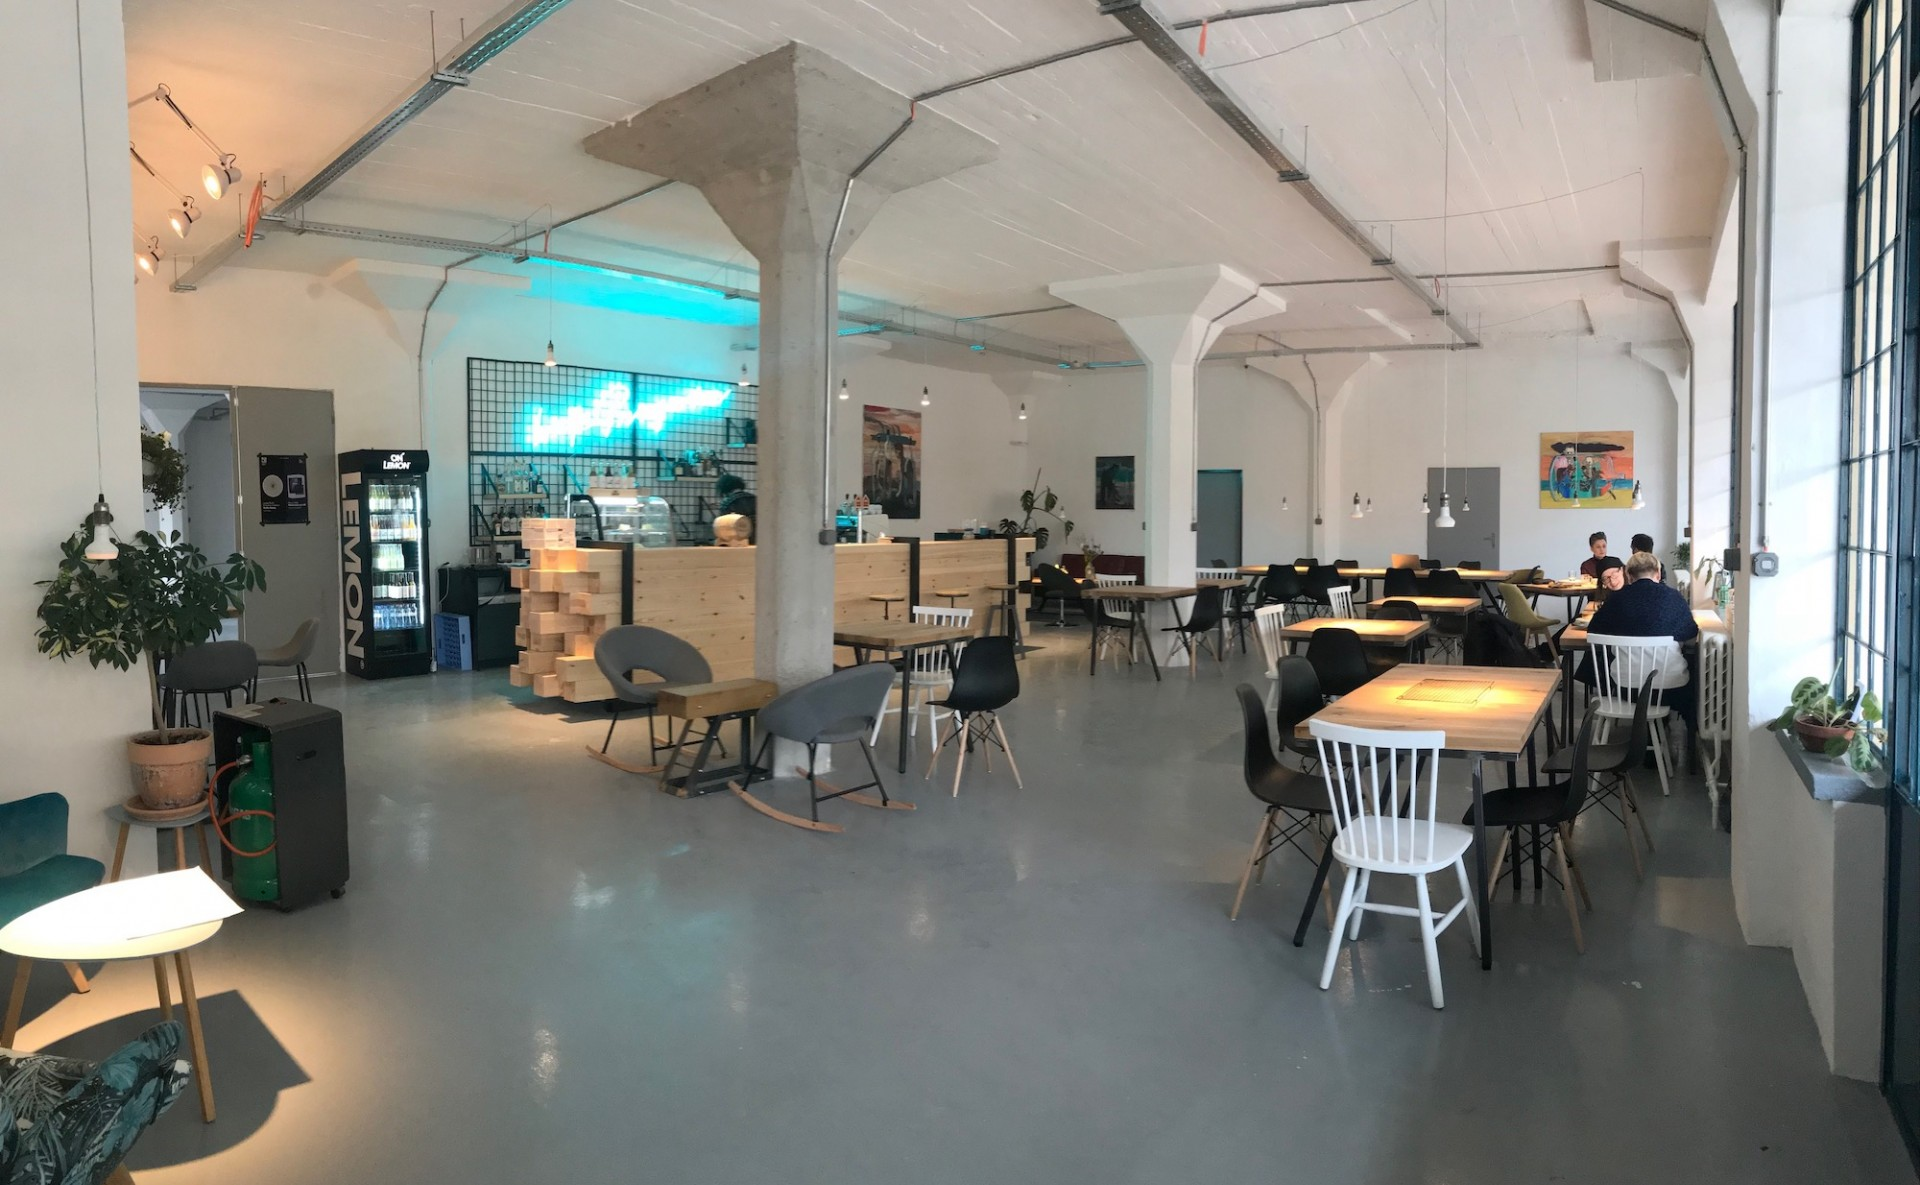 Industrial space for events